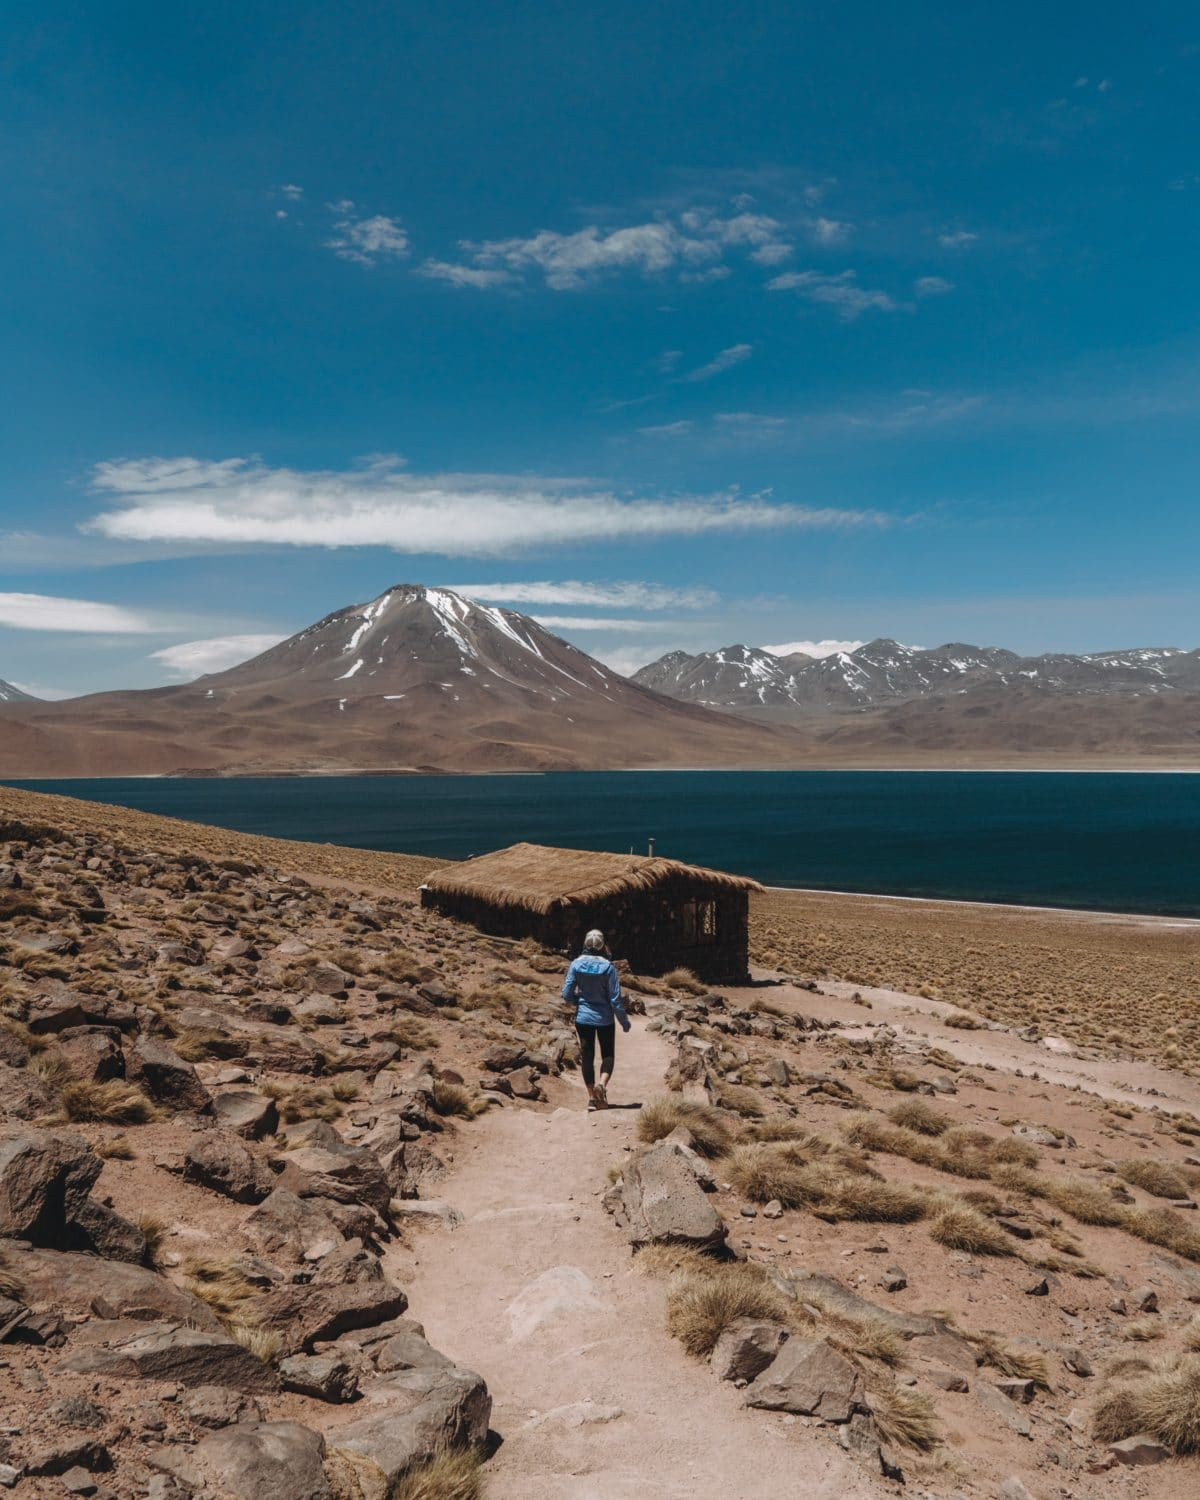 The Ultimate 6 Day San Pedro de Atacama Itinerary to Avoid Altitude Sickness | Atacama Desert Itinerary | Altitude sickness Chile | San Pedro de Atacama, Chile | How to get to San Pedro de Atacama | Altiplanic Lagoons Chile | Driest place on Earth | Chile travel tips | Chile travel itinerary | South America travel tips | Where to go in South America | Where to go in Chile | Where to go in San Pedro de Atacama | Best things to do in San Pedro de Atacama | Top desert vacations | Best South America trips |